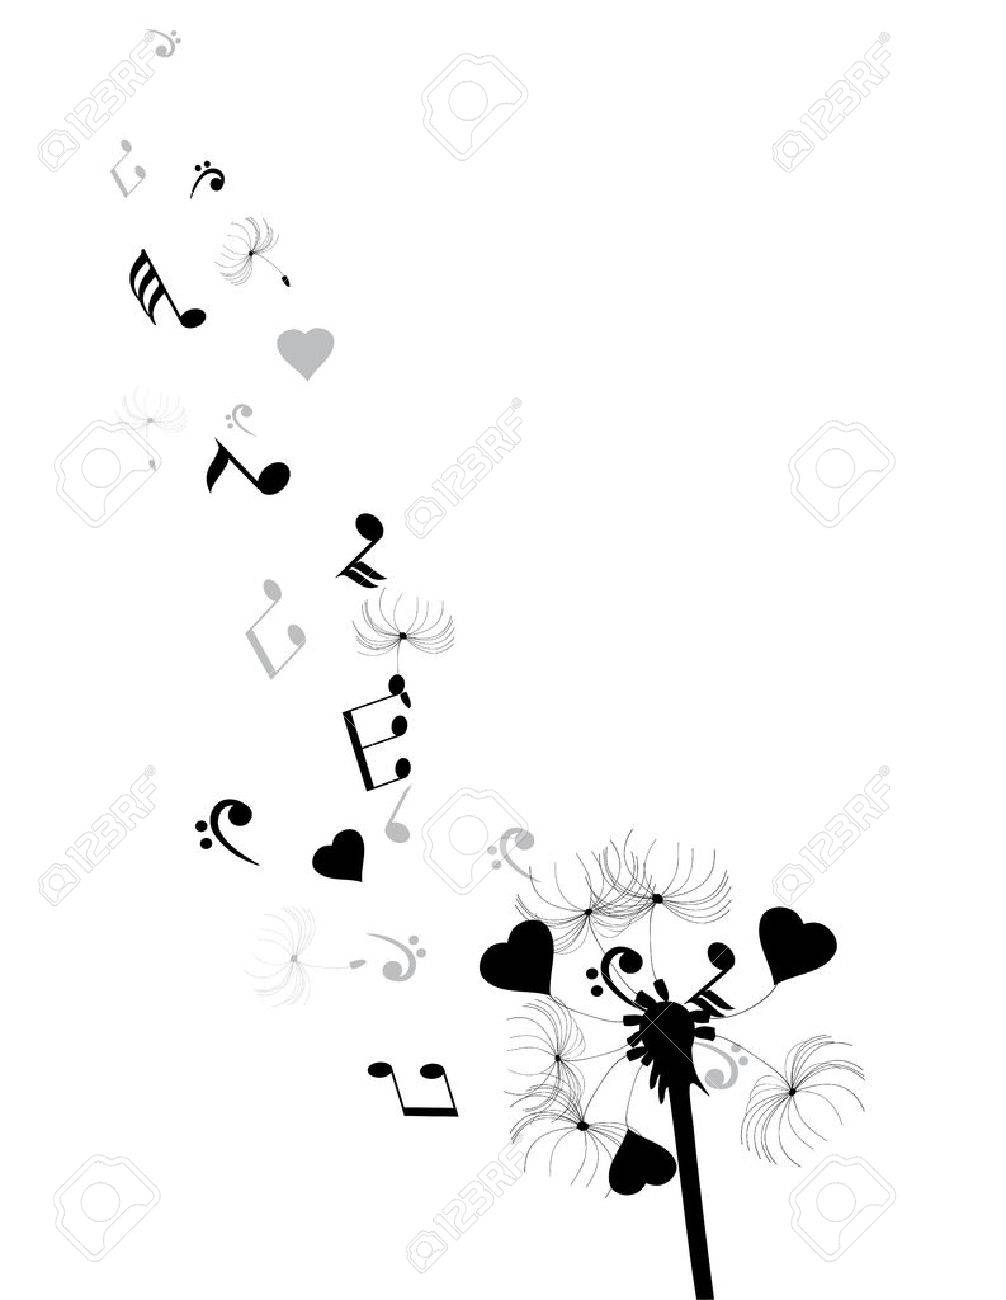 illustration of a dandelion with hears and musical notes - 51471432